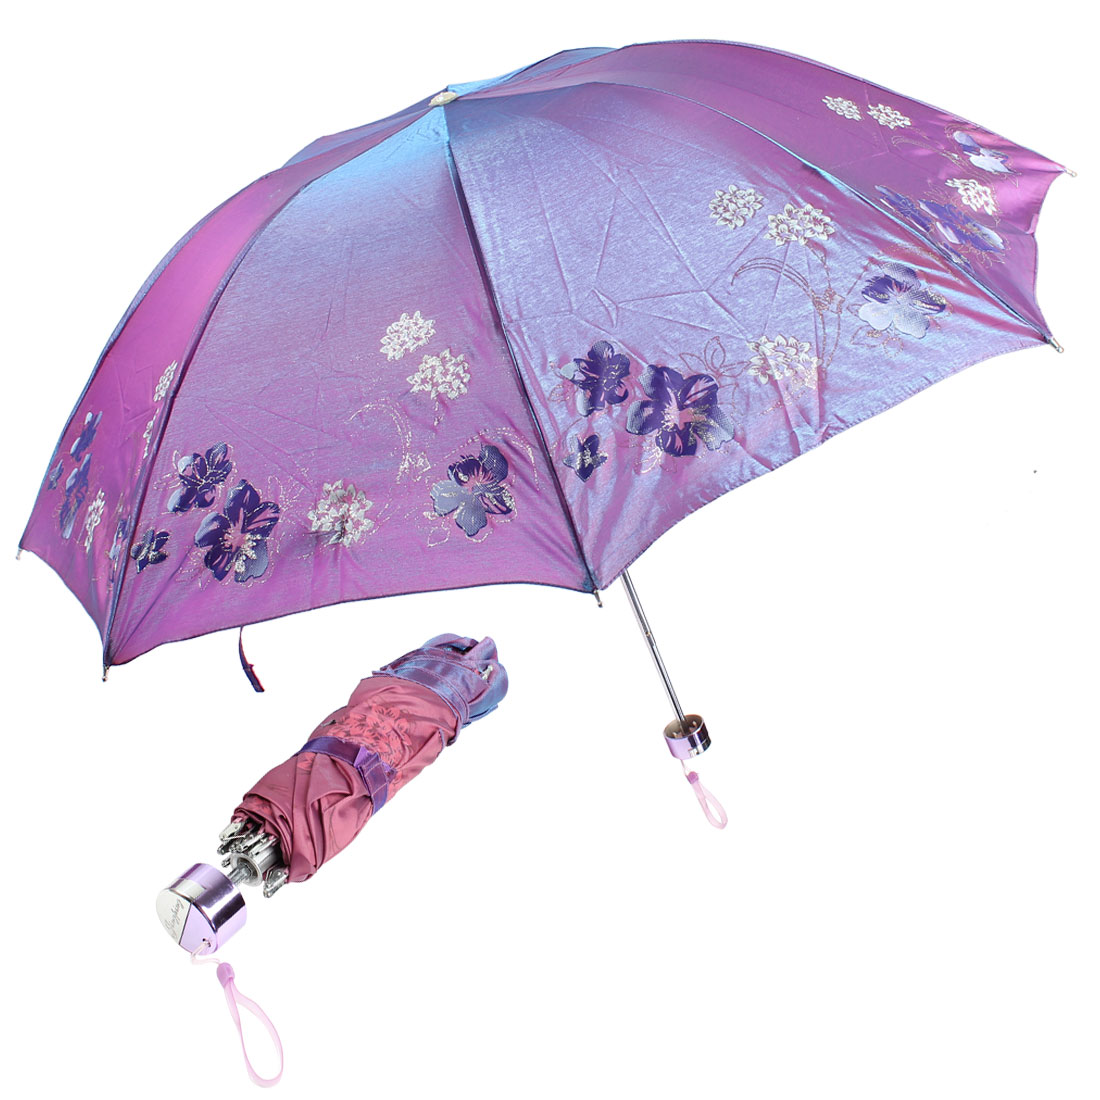 Portable Folding Flower Printed Purple Sun Umbrella w Pouch